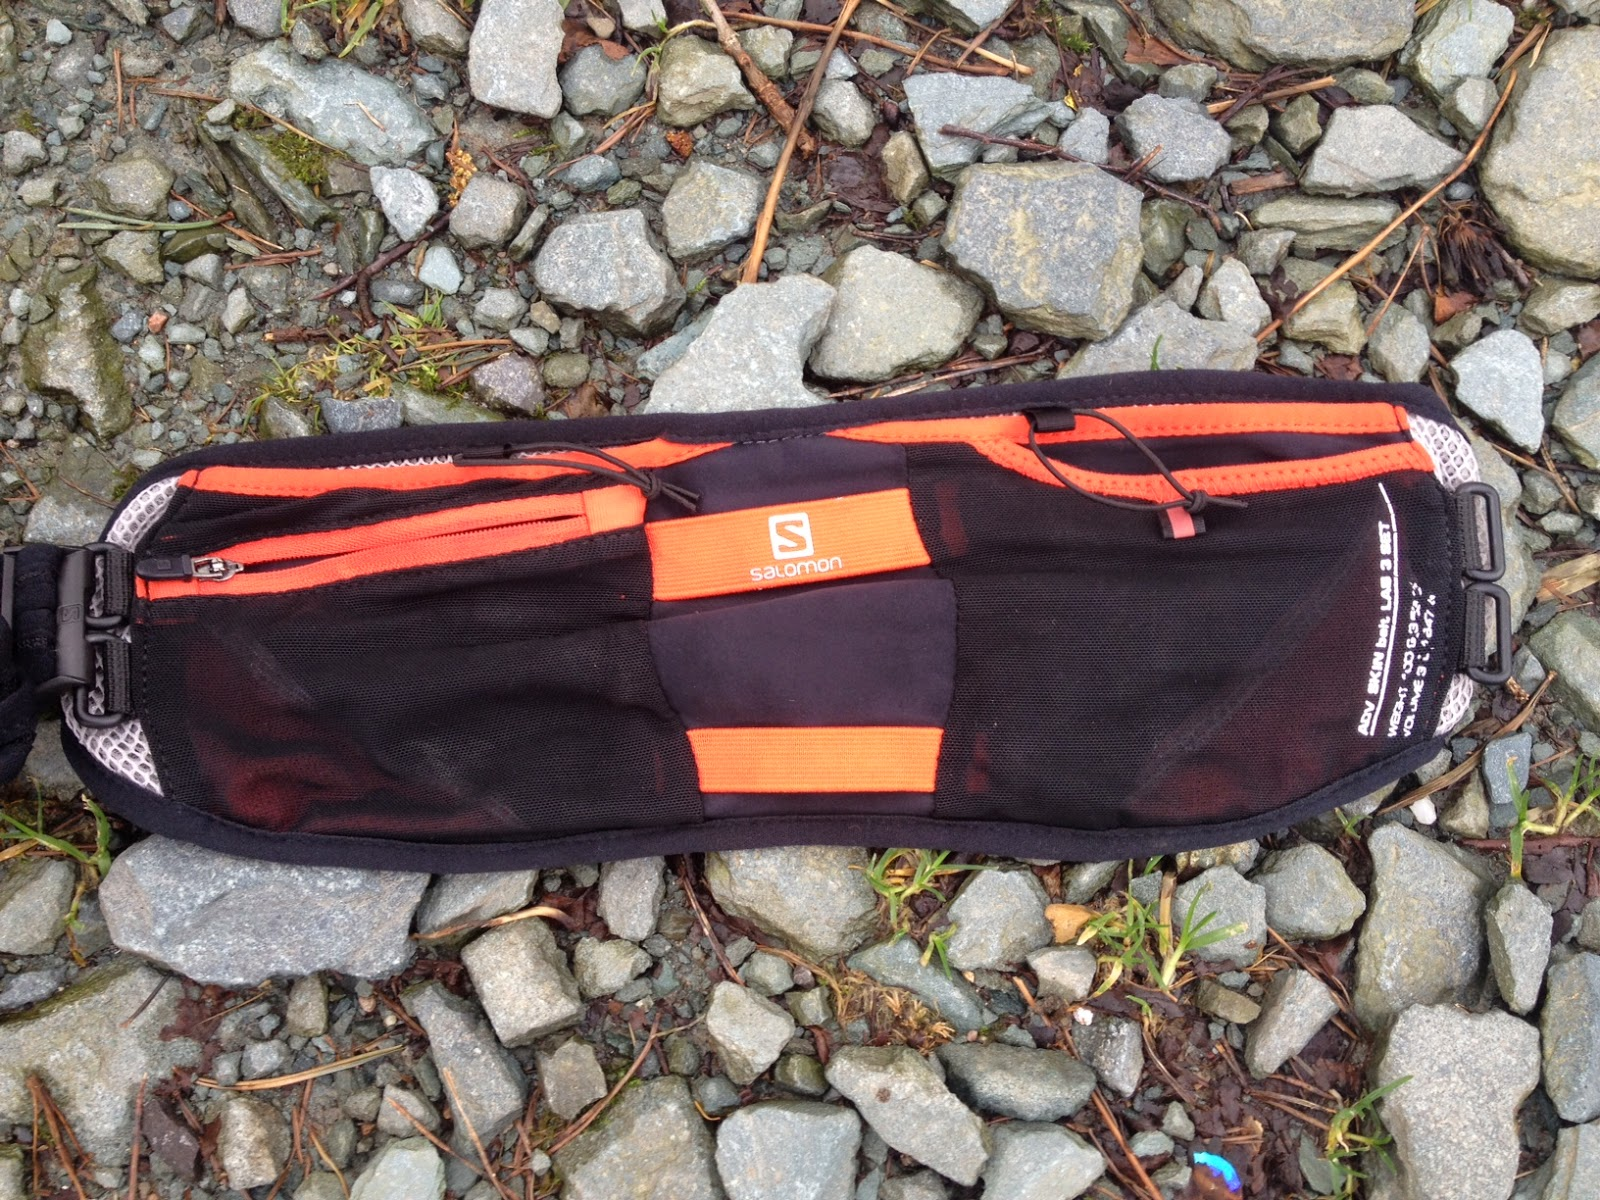 Review: Salomon S-Lab Advanced Skin M Belt Set